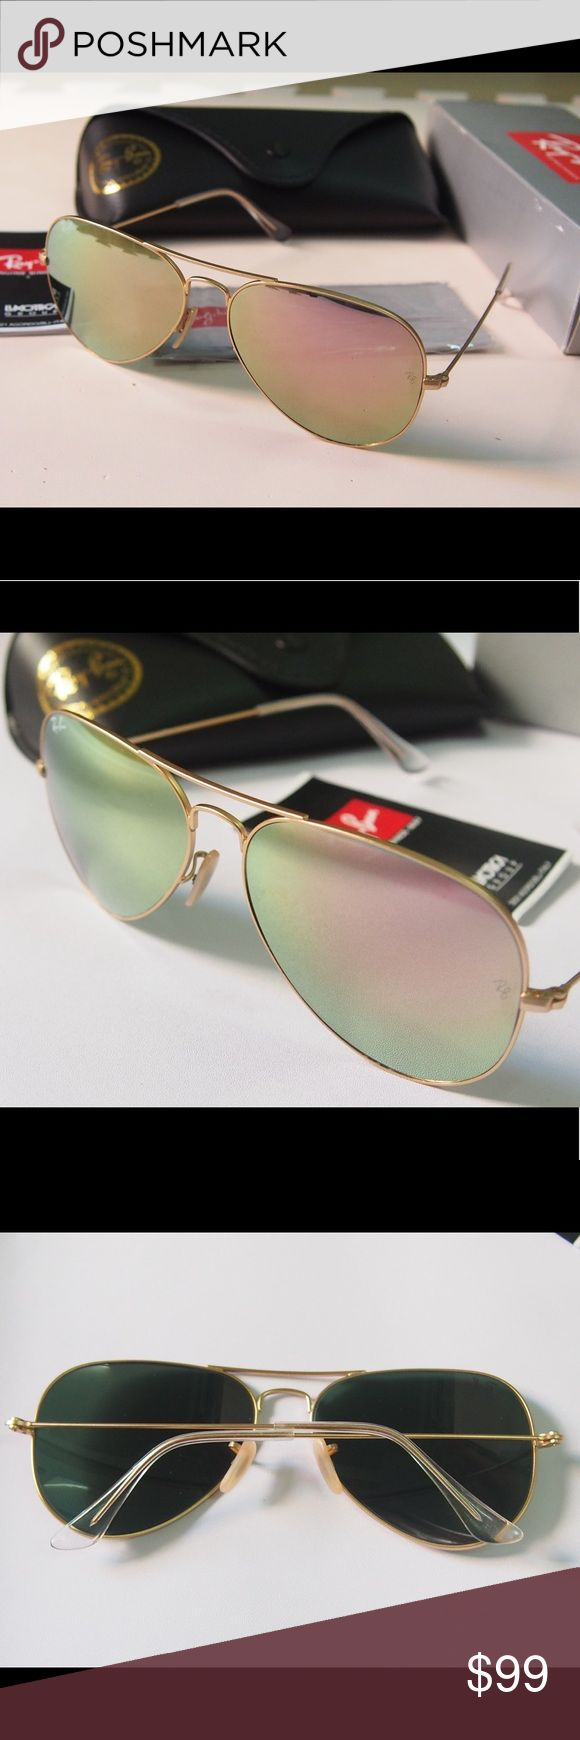 Ray ban aviators 3025 rose gold sunglasses RB 3025 aviators rose gold mirror sunglasses.  Brand new no scratches  Come with original box and case 100% real return acceptable  Fast shipping Ray-Ban Accessories Sunglasses